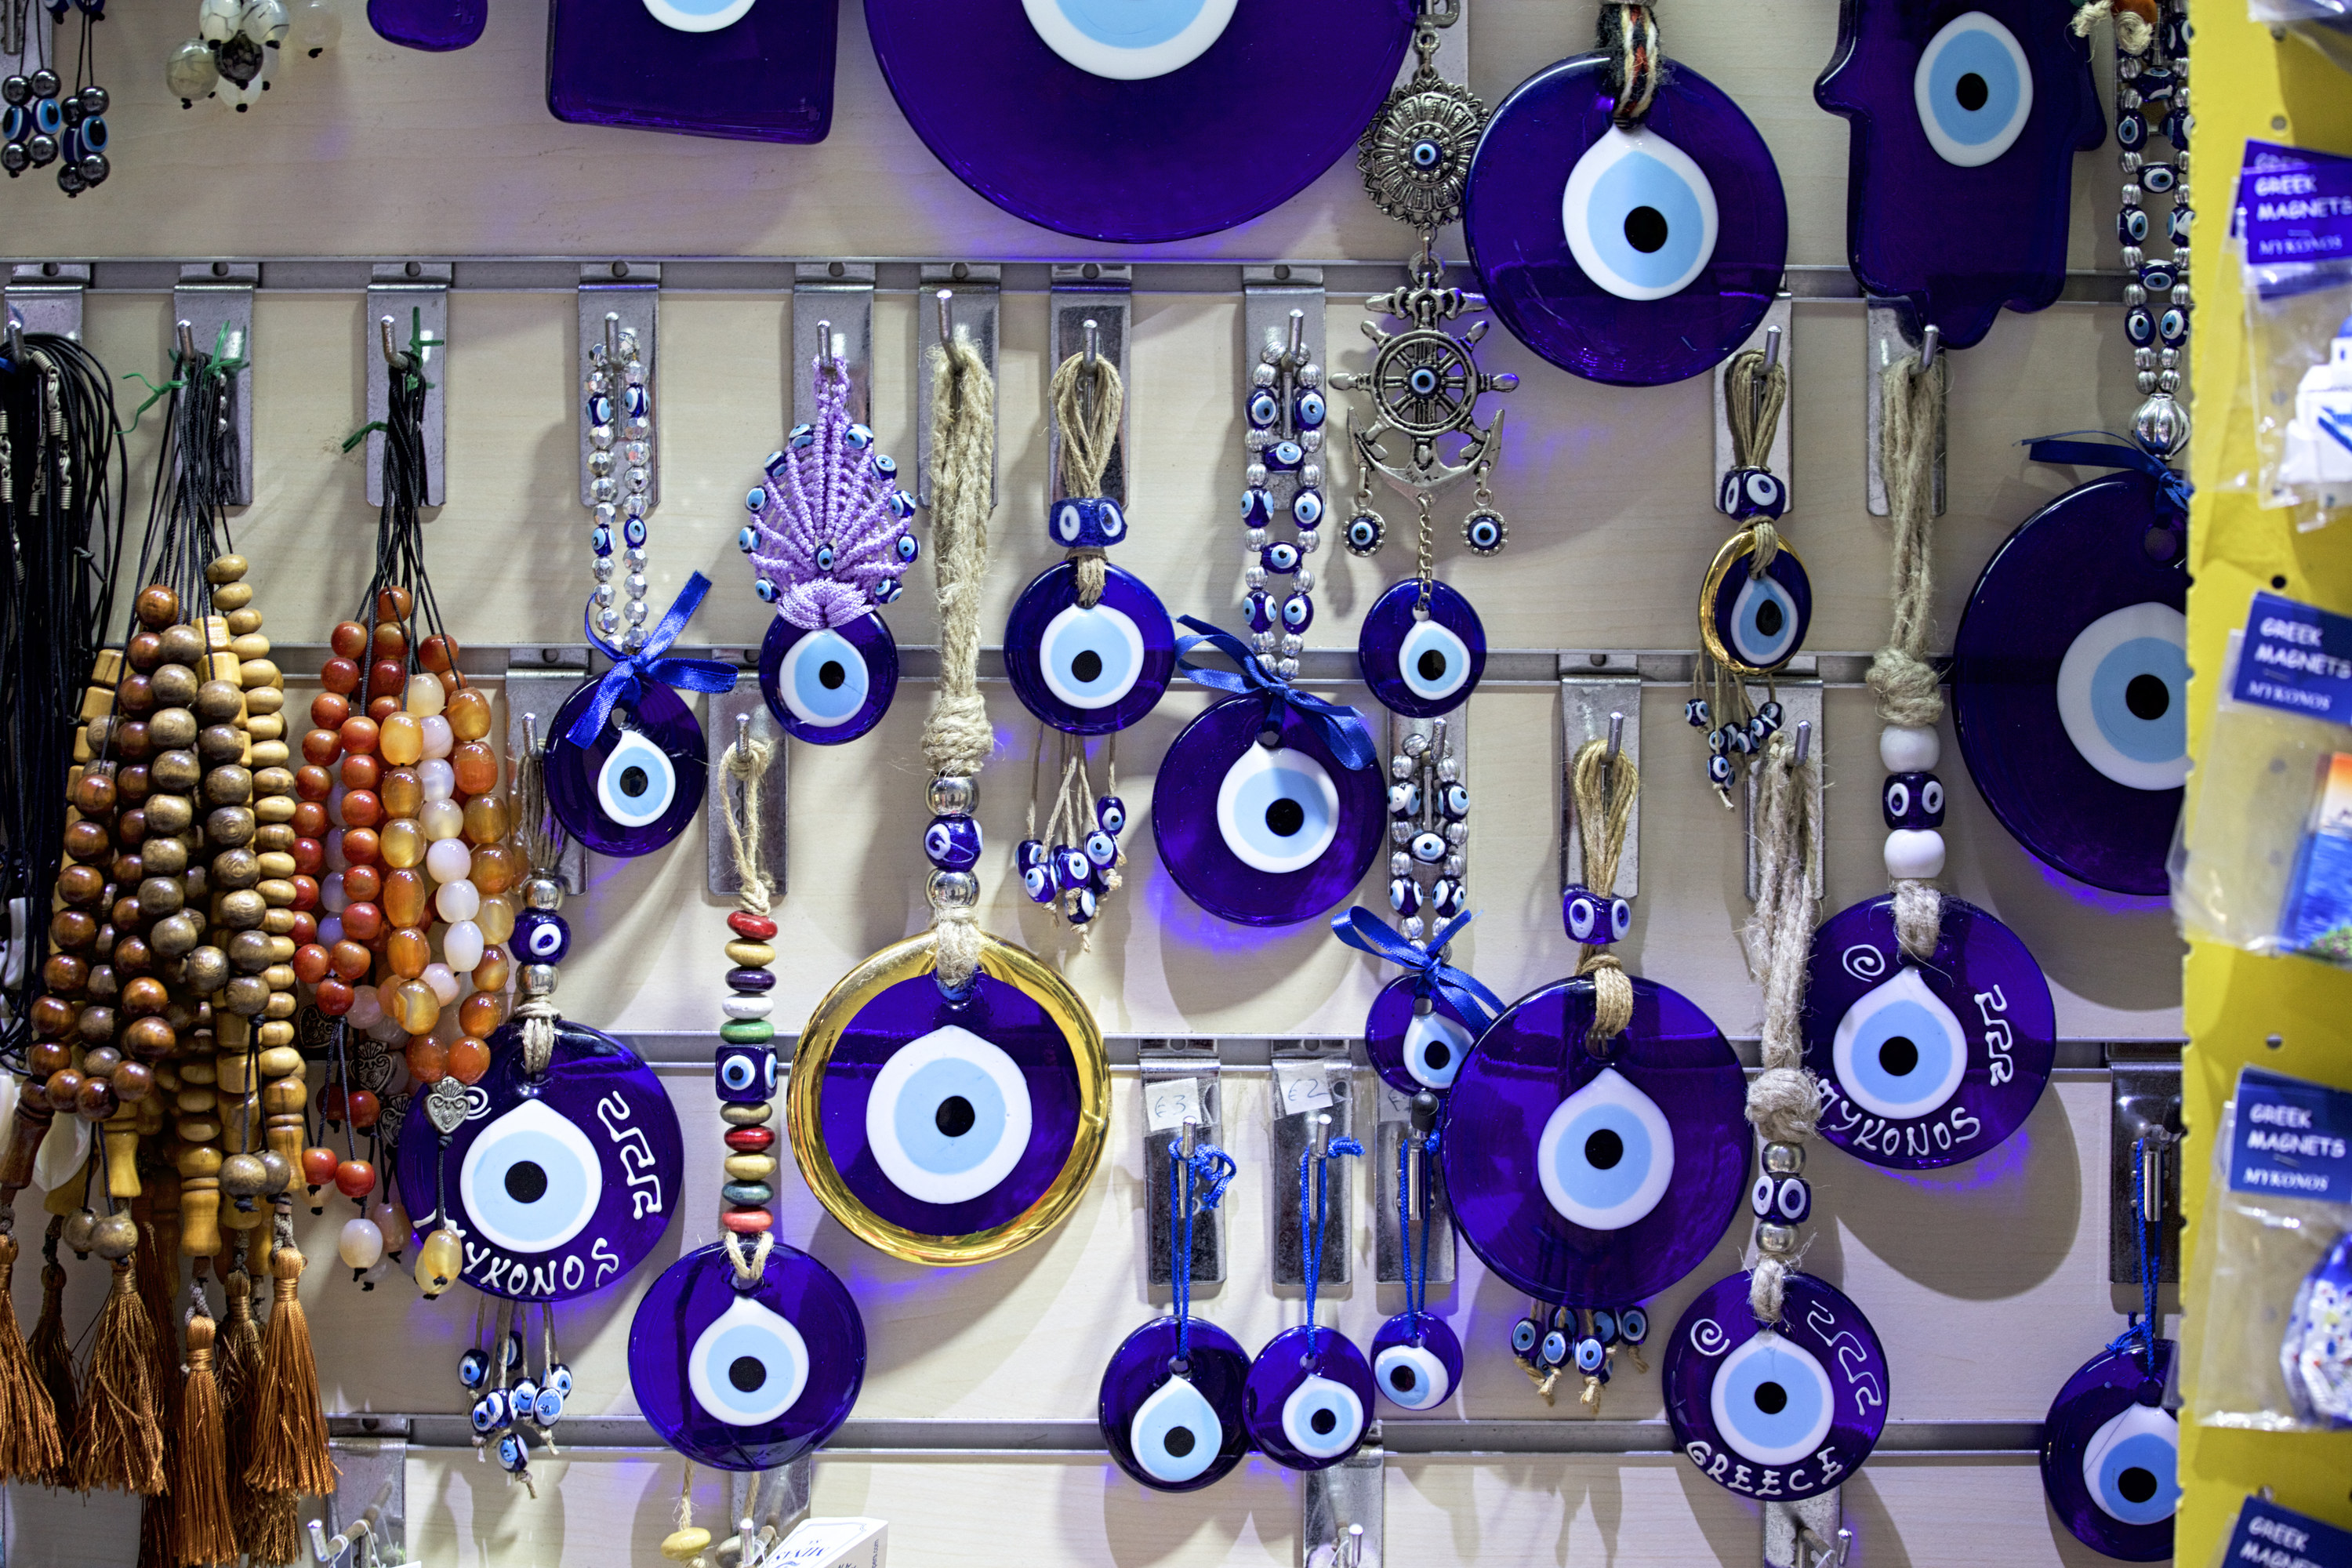 A bunch of evil eye amulets hanging on a wall